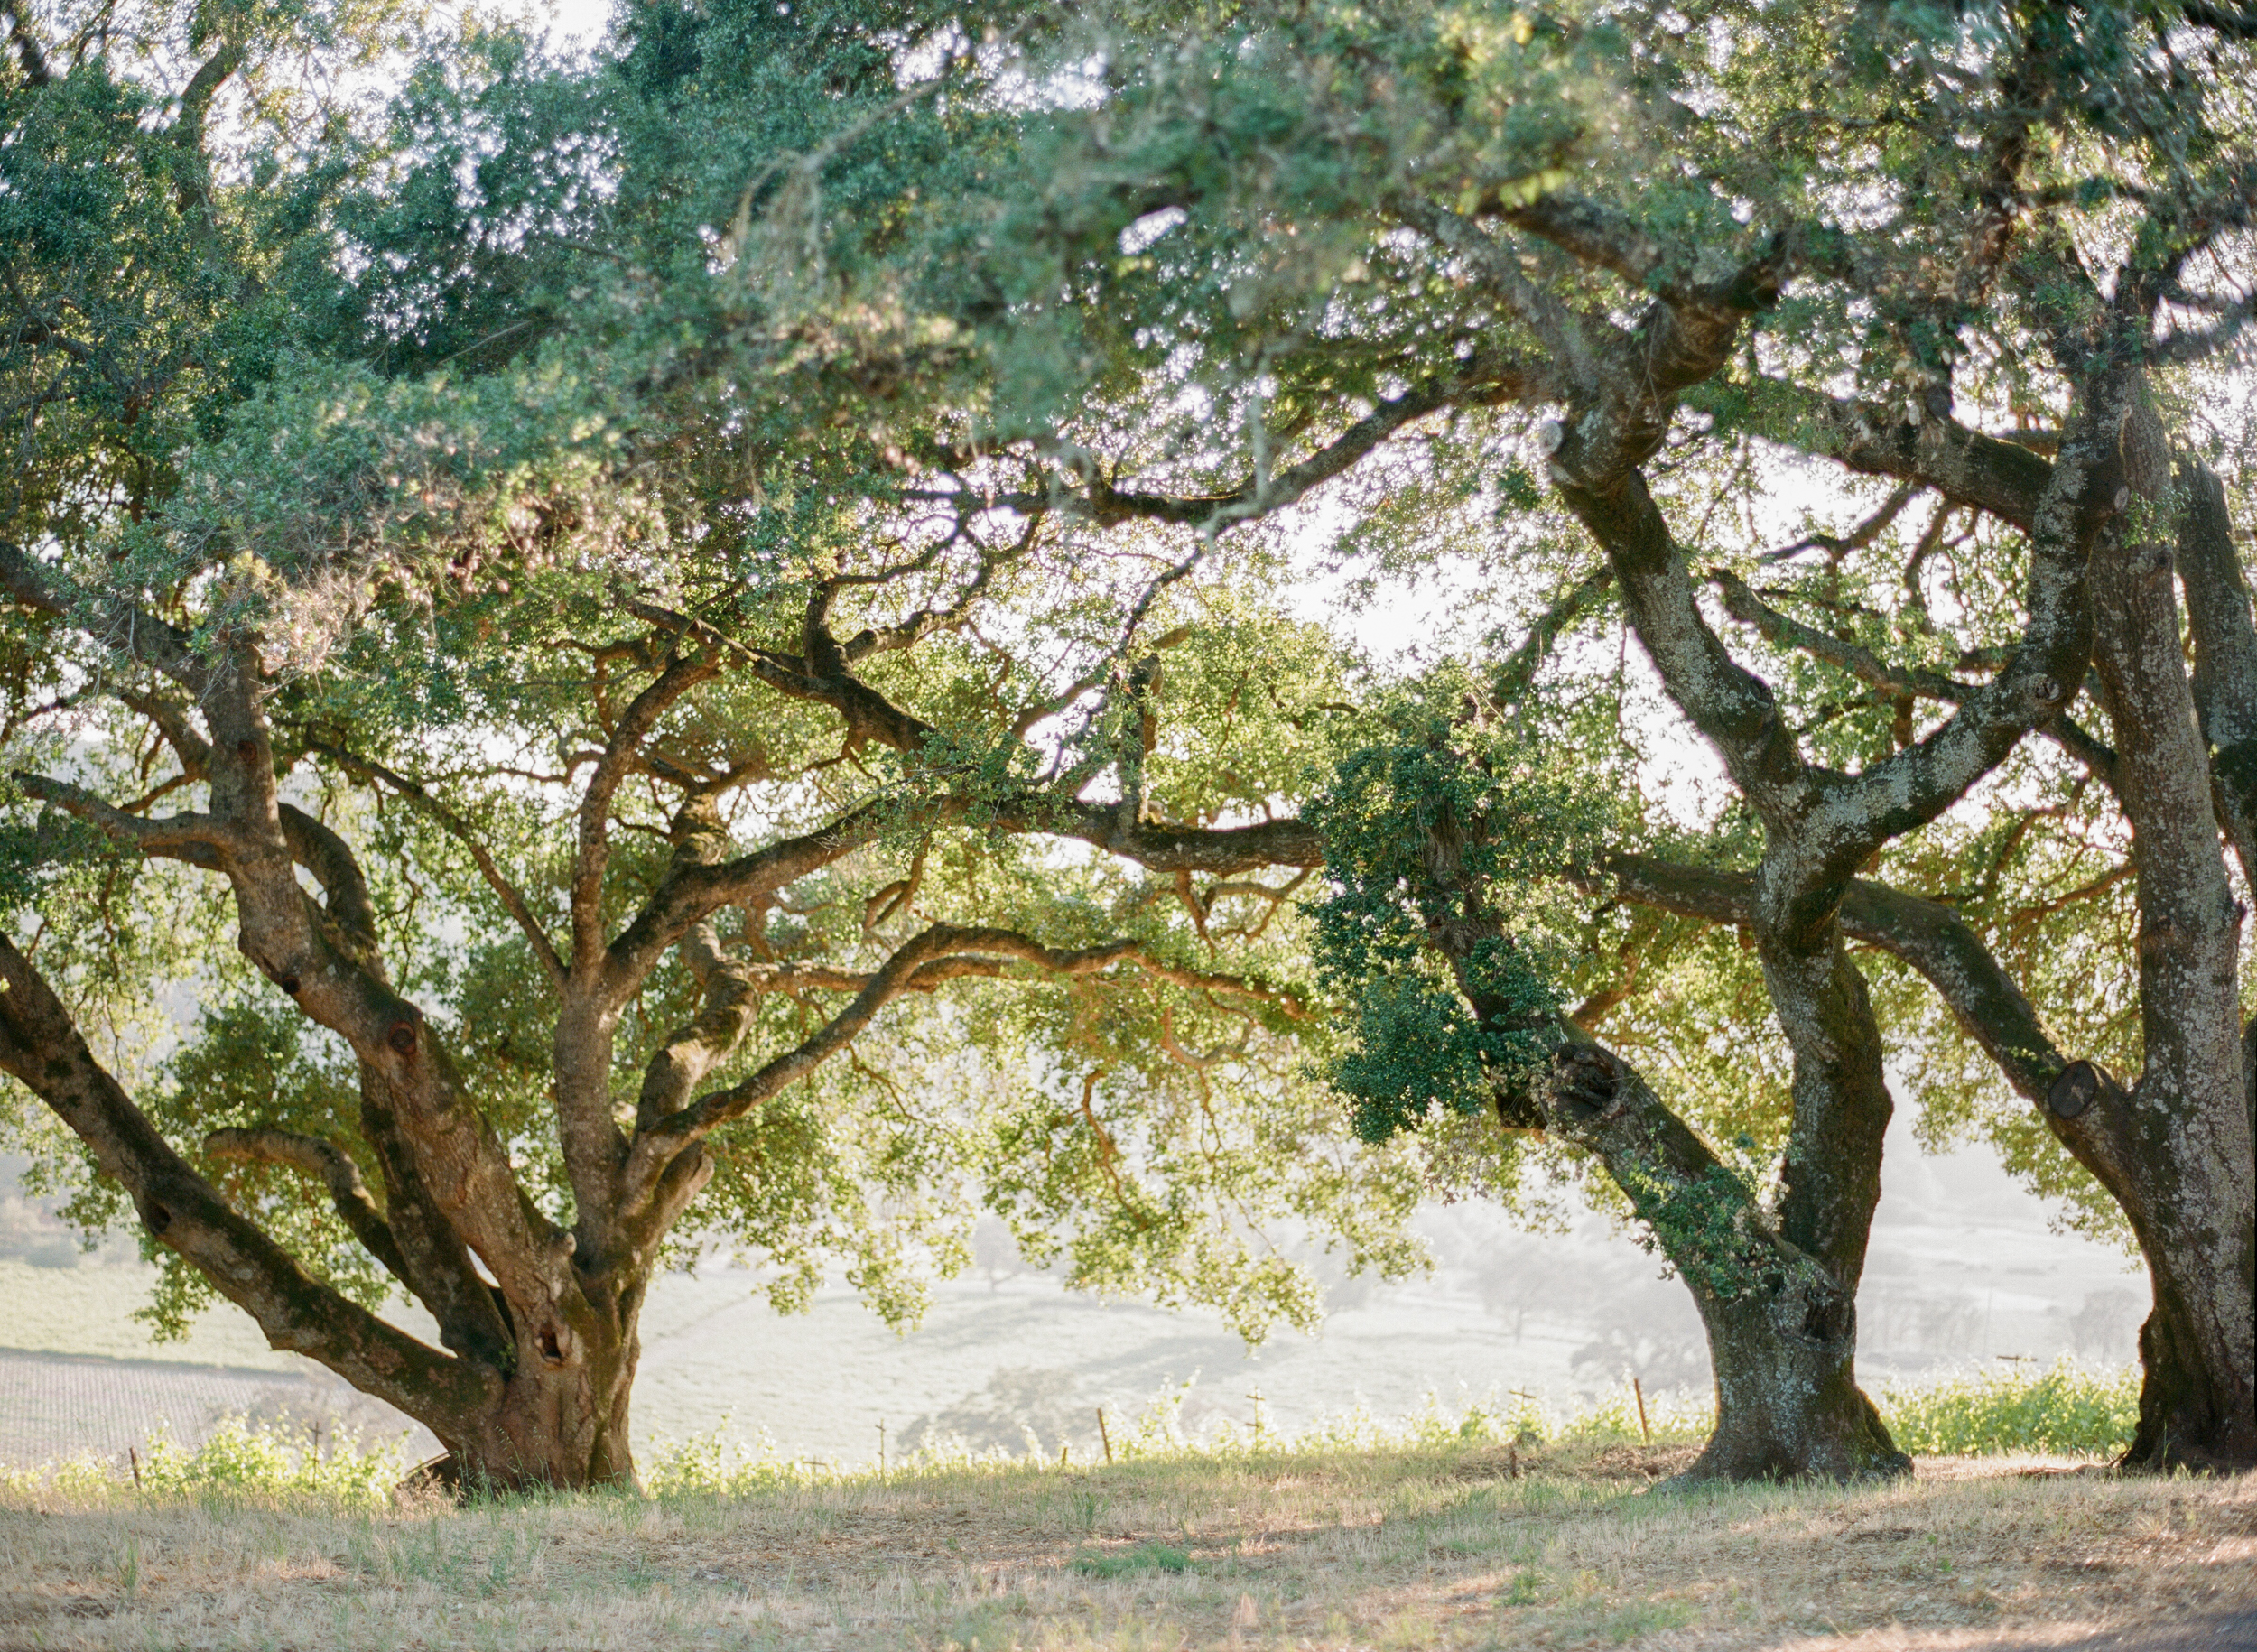 The sunlight filtering in through ancient oaks in California wine country make for a magical ceremony setting; photo by Sylvie Gil